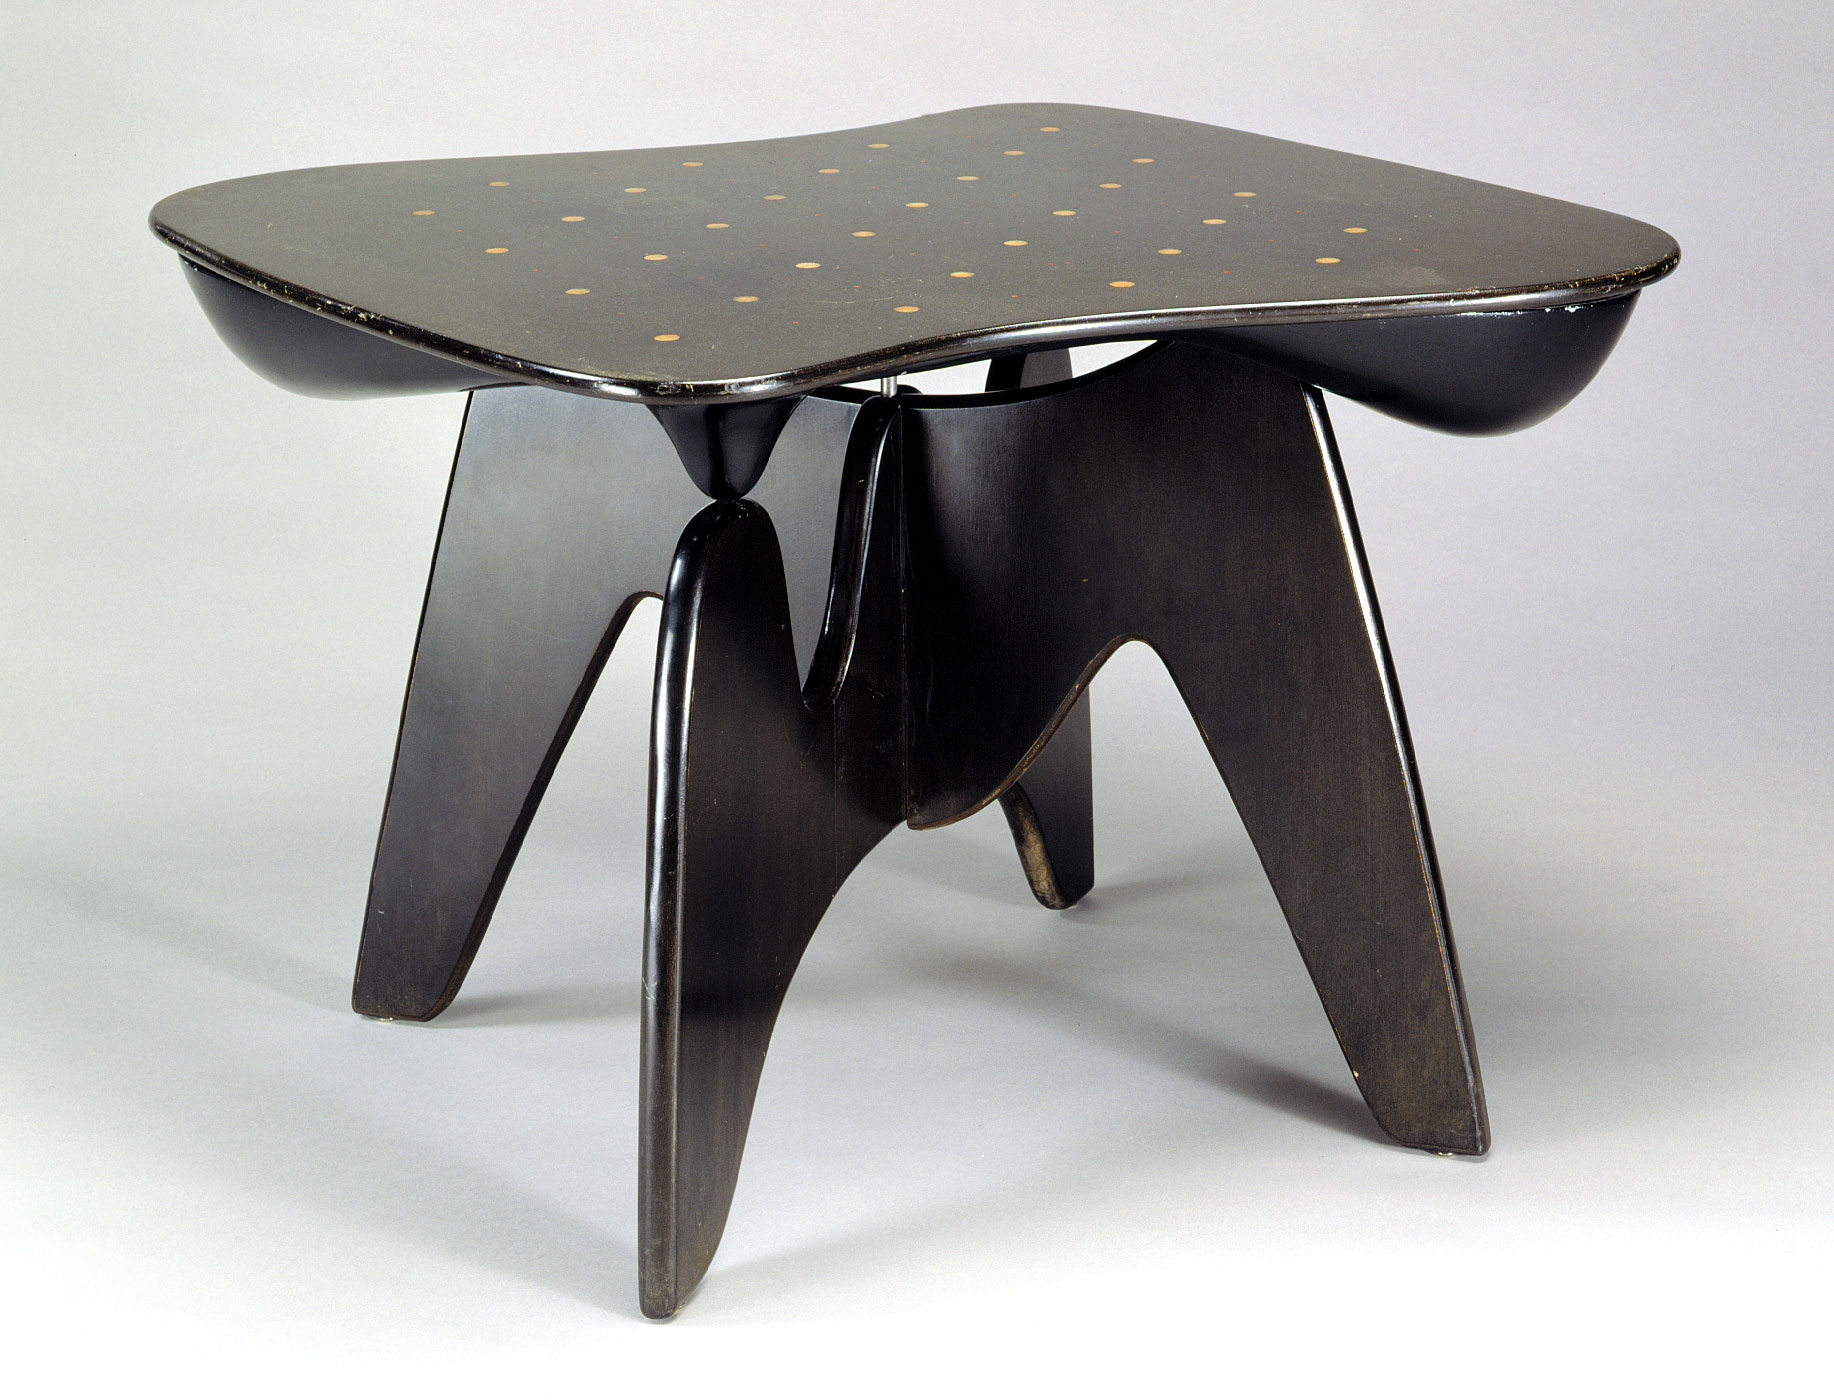 Low black table in wood with peg holes in the surface and curving sides and legs.